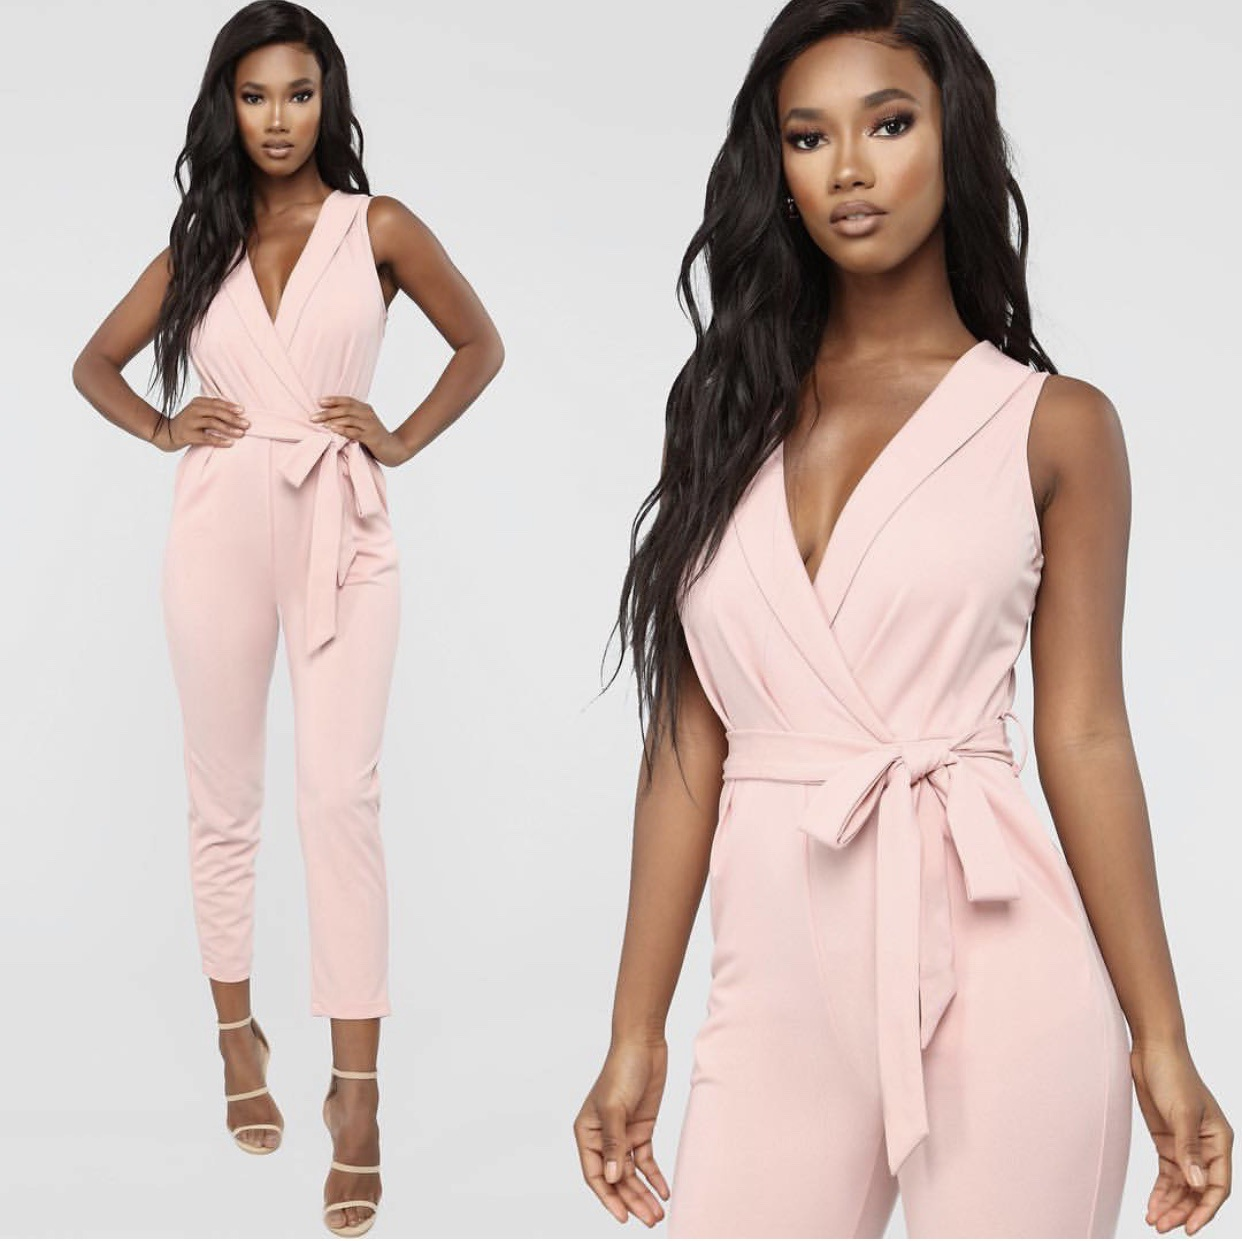 Ymg-001 European And American-Style Hot Selling Women's Clothing 2019 European Grand Prix Women's Suit Collar Onesie